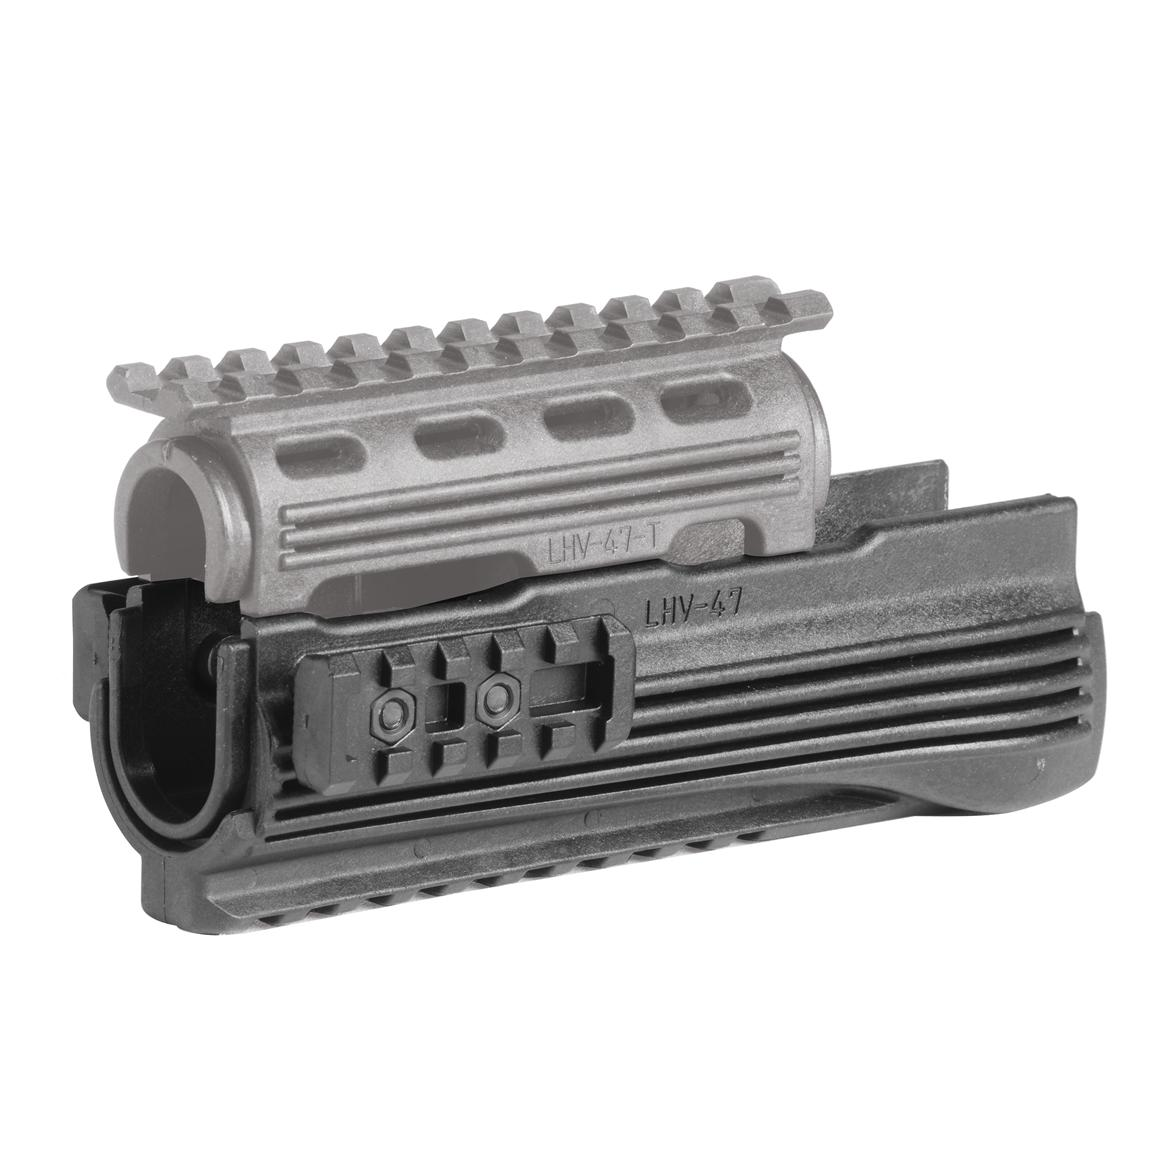 EMA® Polymer 3 Picatinny / Weaver Rails for Lower Handguard